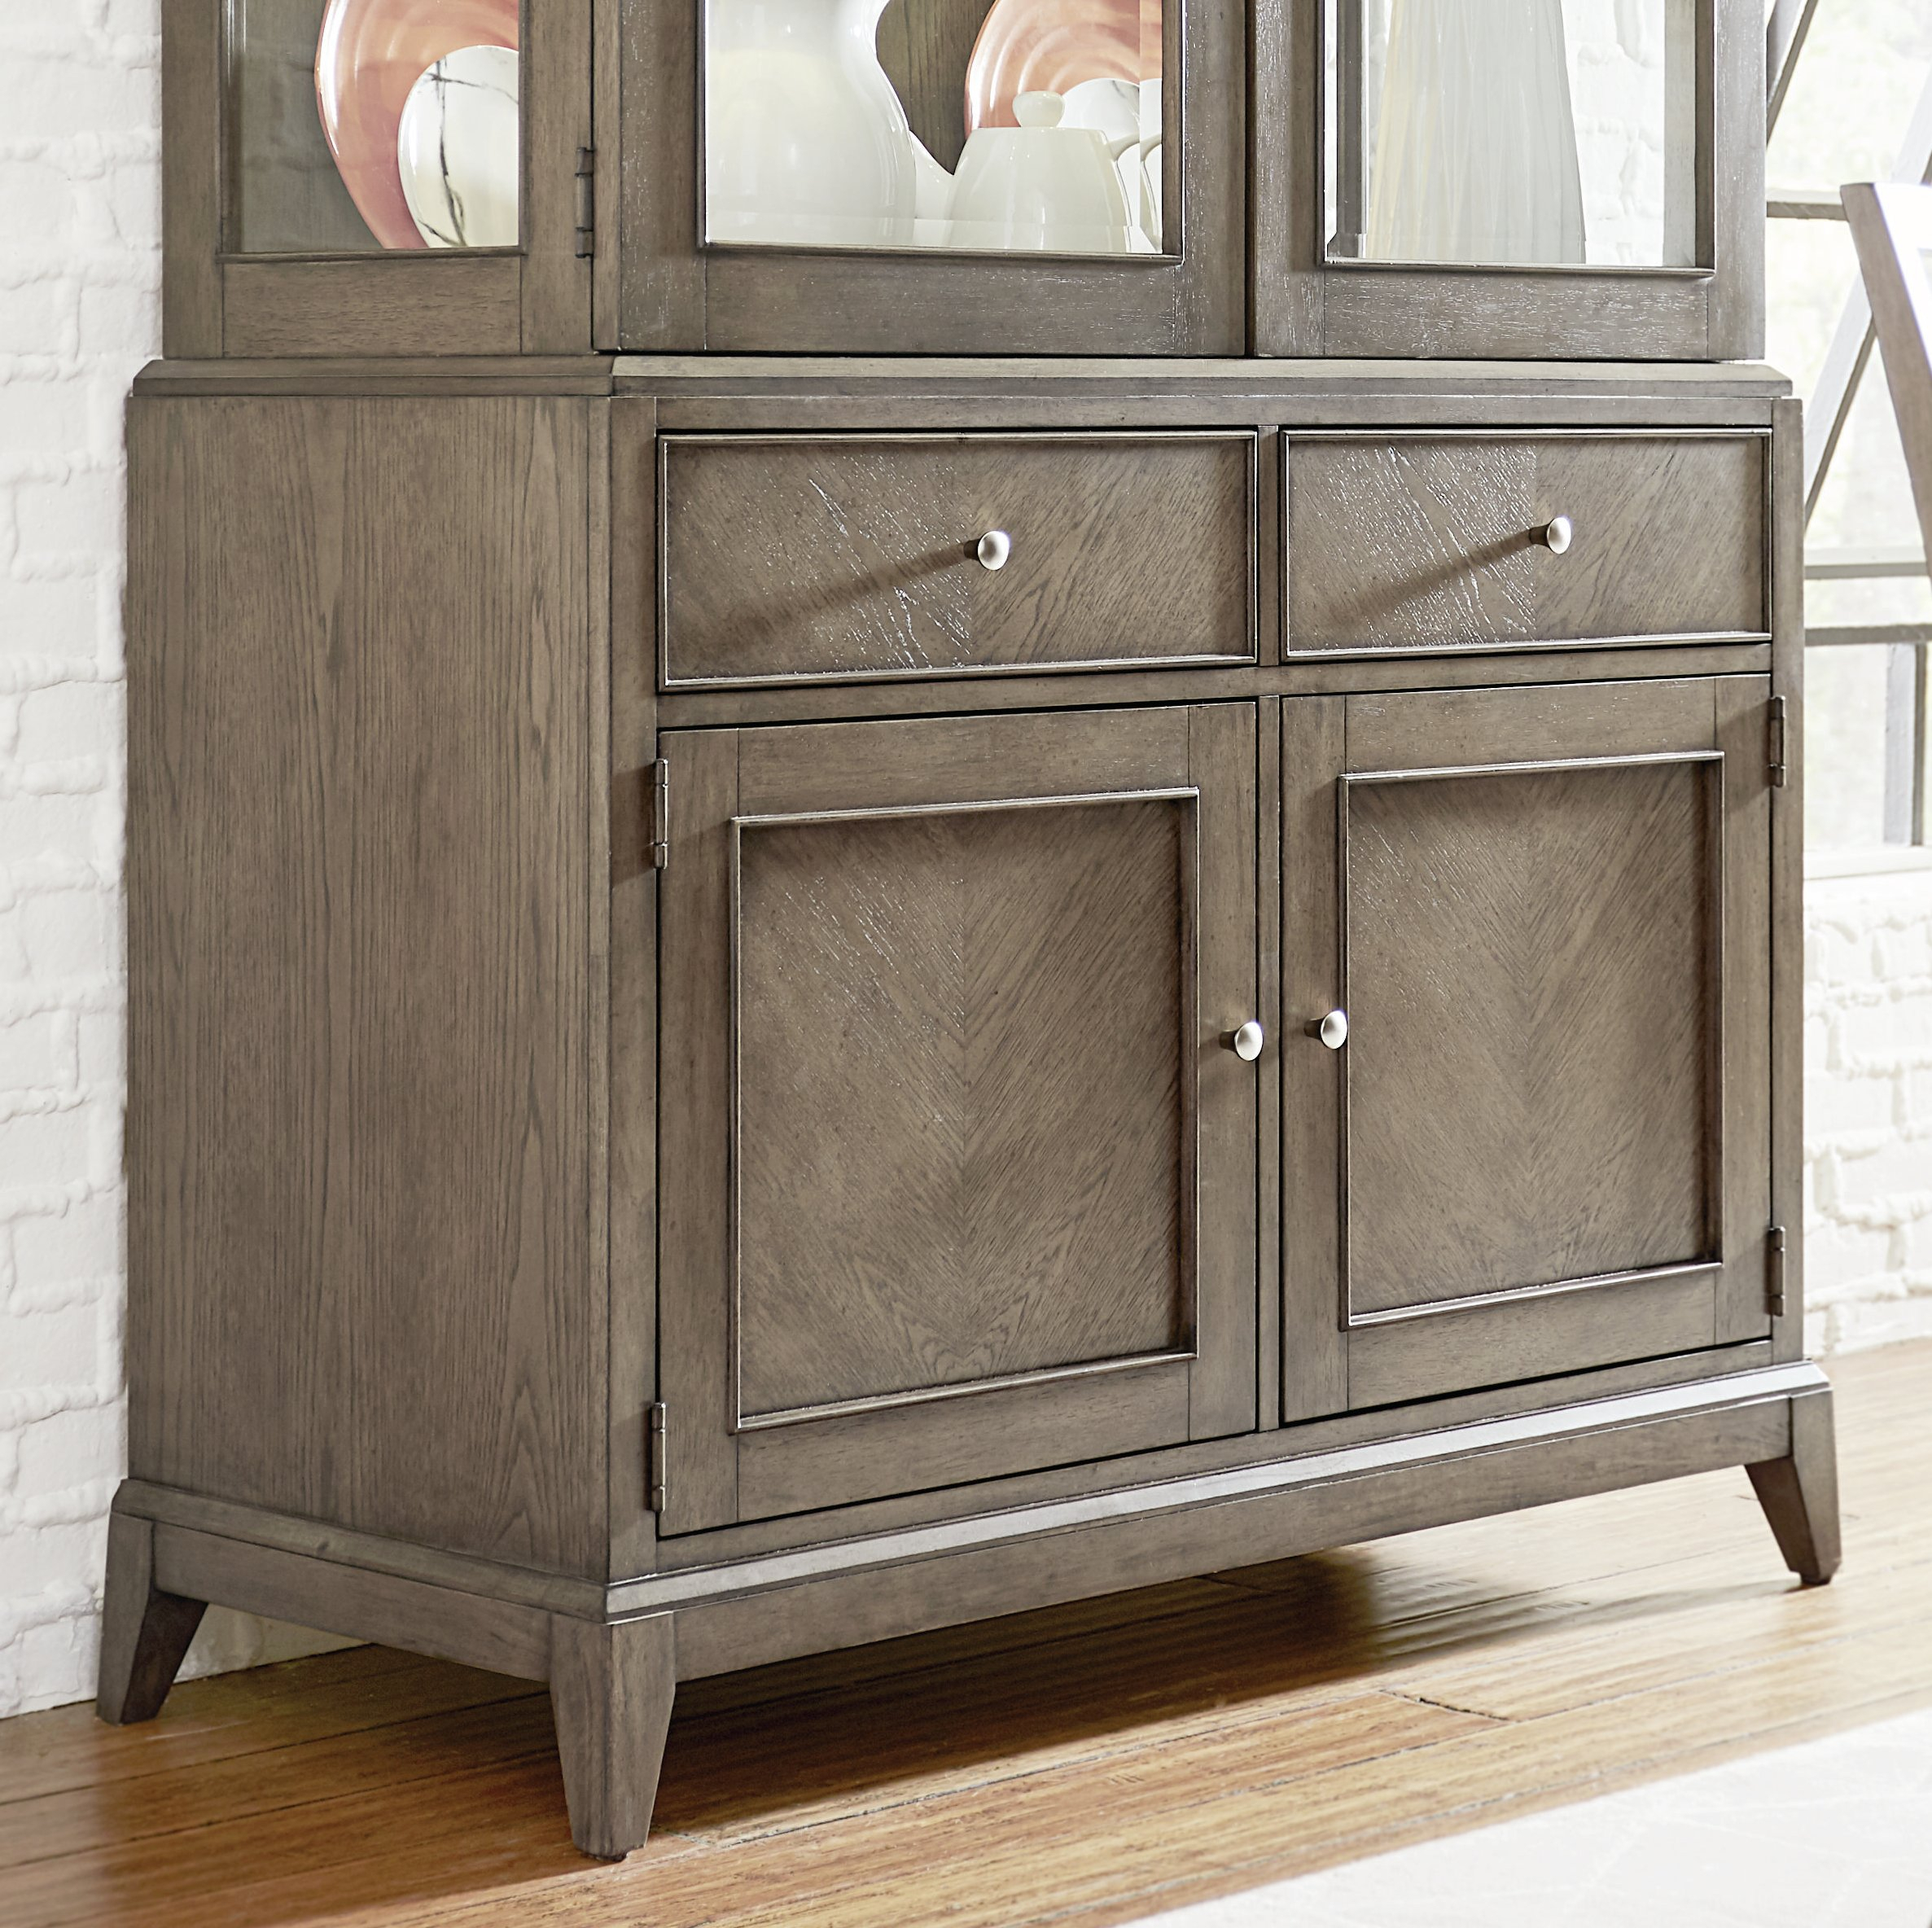 Inspiration about Whicker Dining Sideboard Within Most Up To Date Deville Russelle Sideboards (#12 of 20)